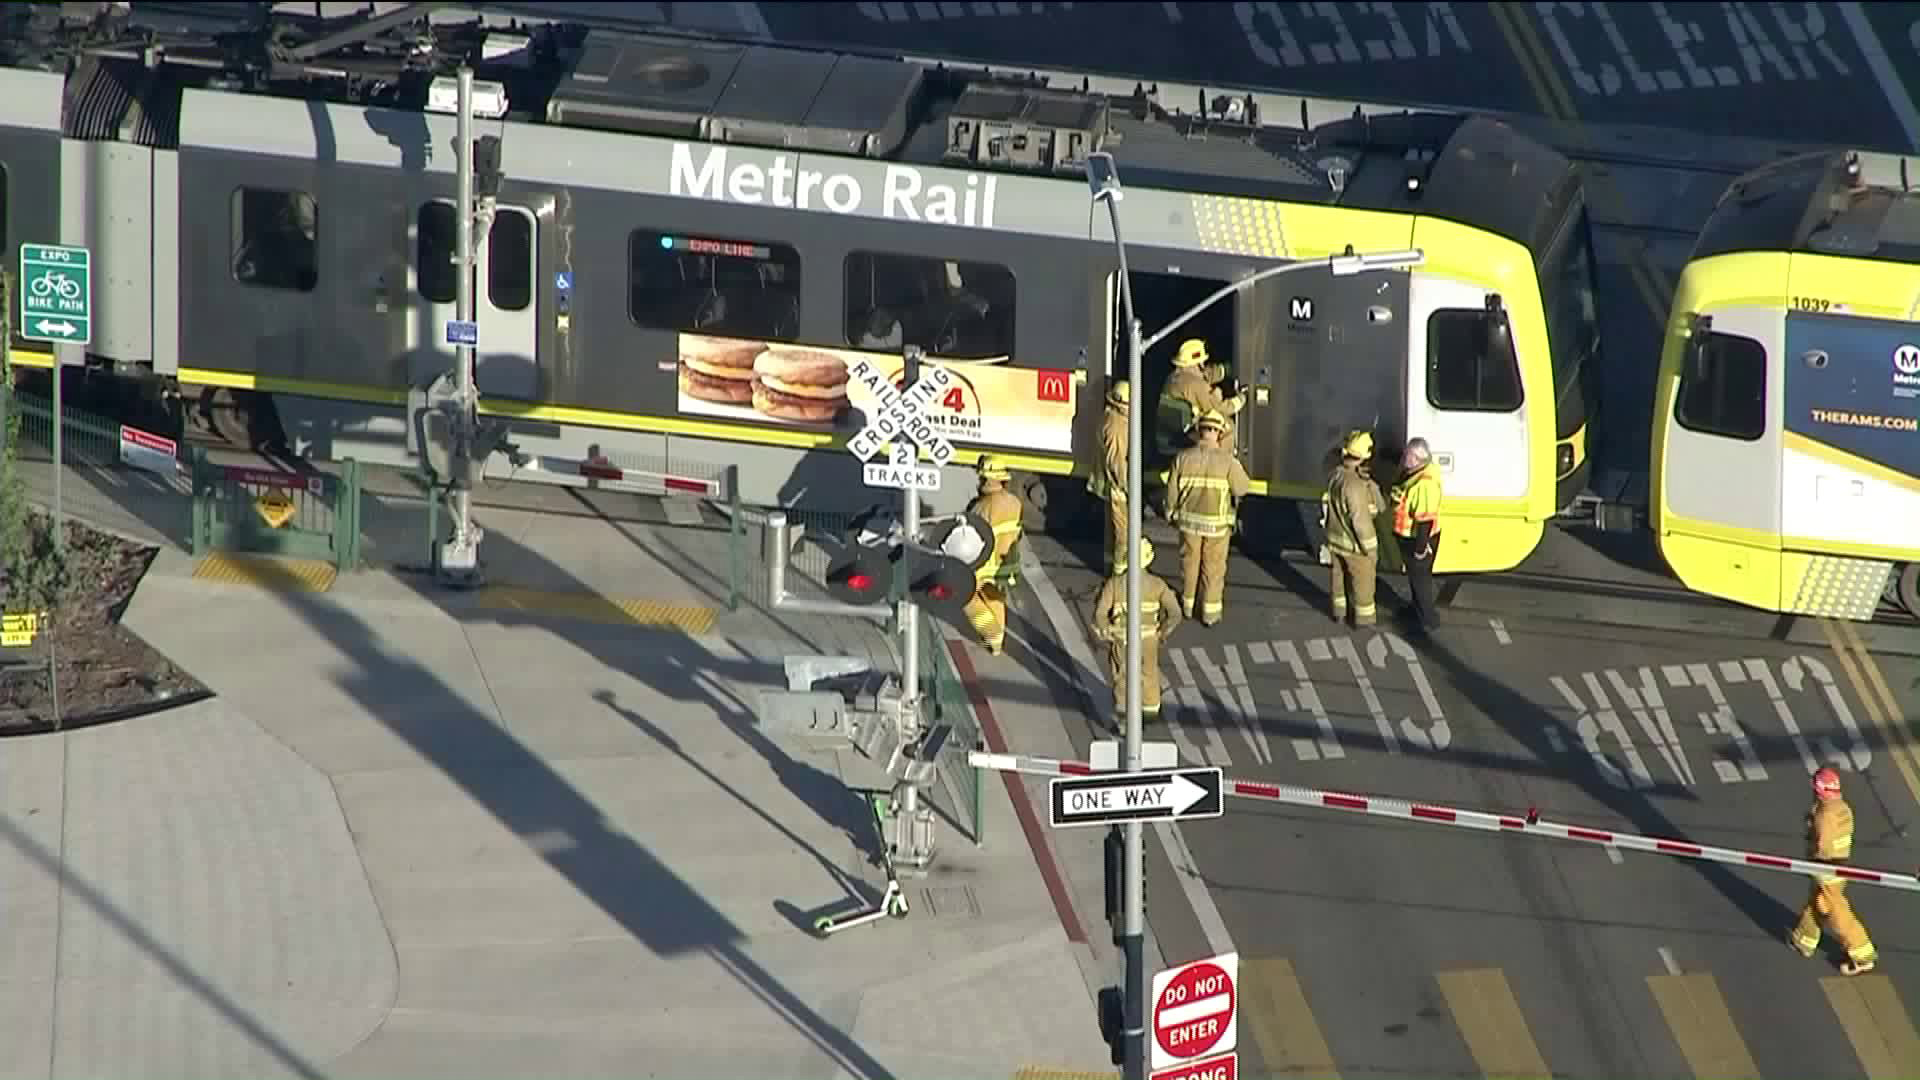 Emergency crews respond to a train incident in Rancho Park on Jan. 2, 2019. (Credit: KTLA)